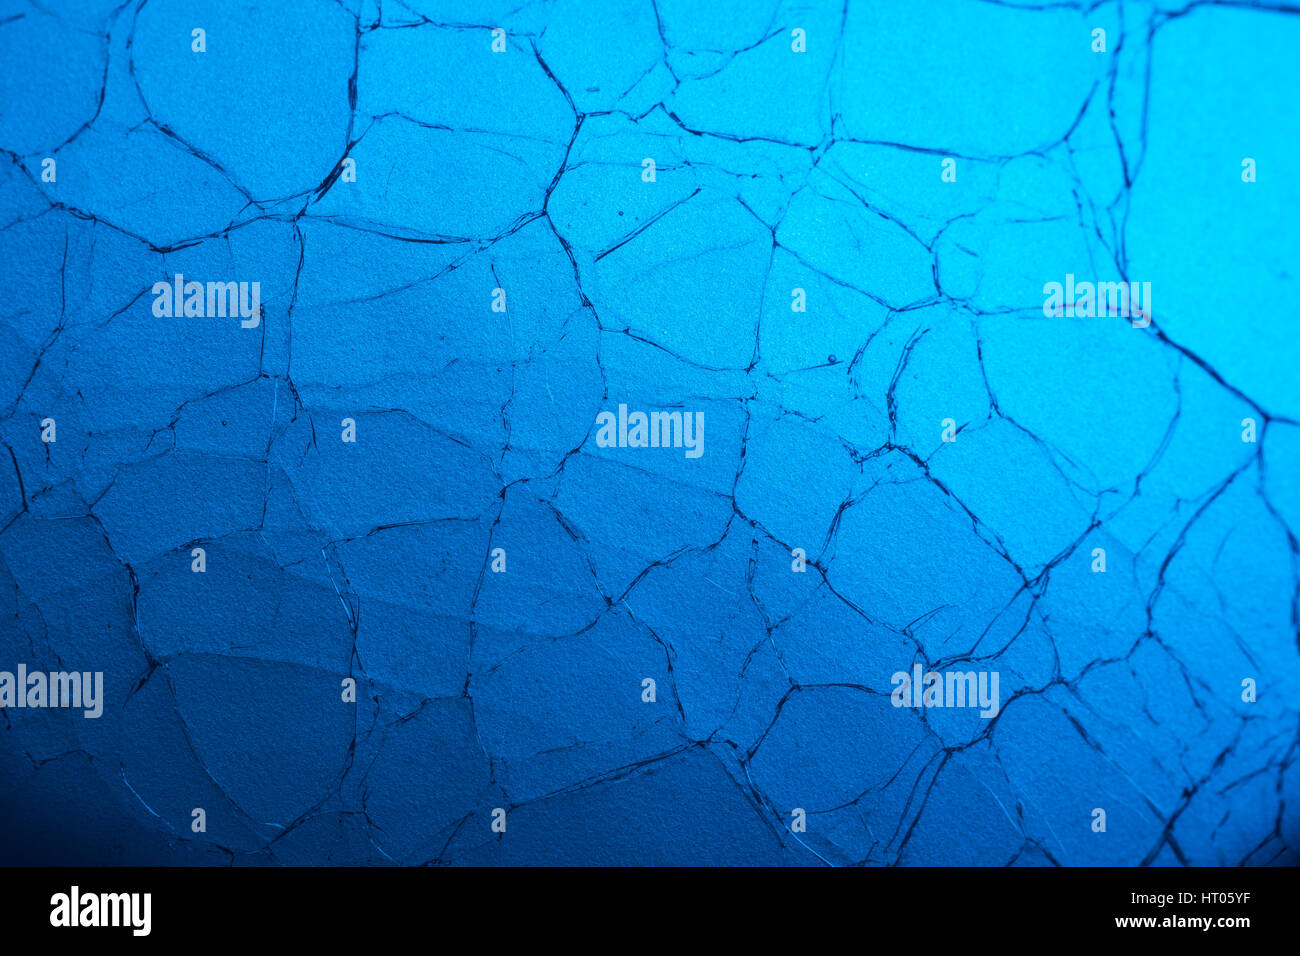 Abstract crazed / cracked glass macro-photo. Possible metaphor for mental illness, shattered dreams, broken promises, - Stock Image